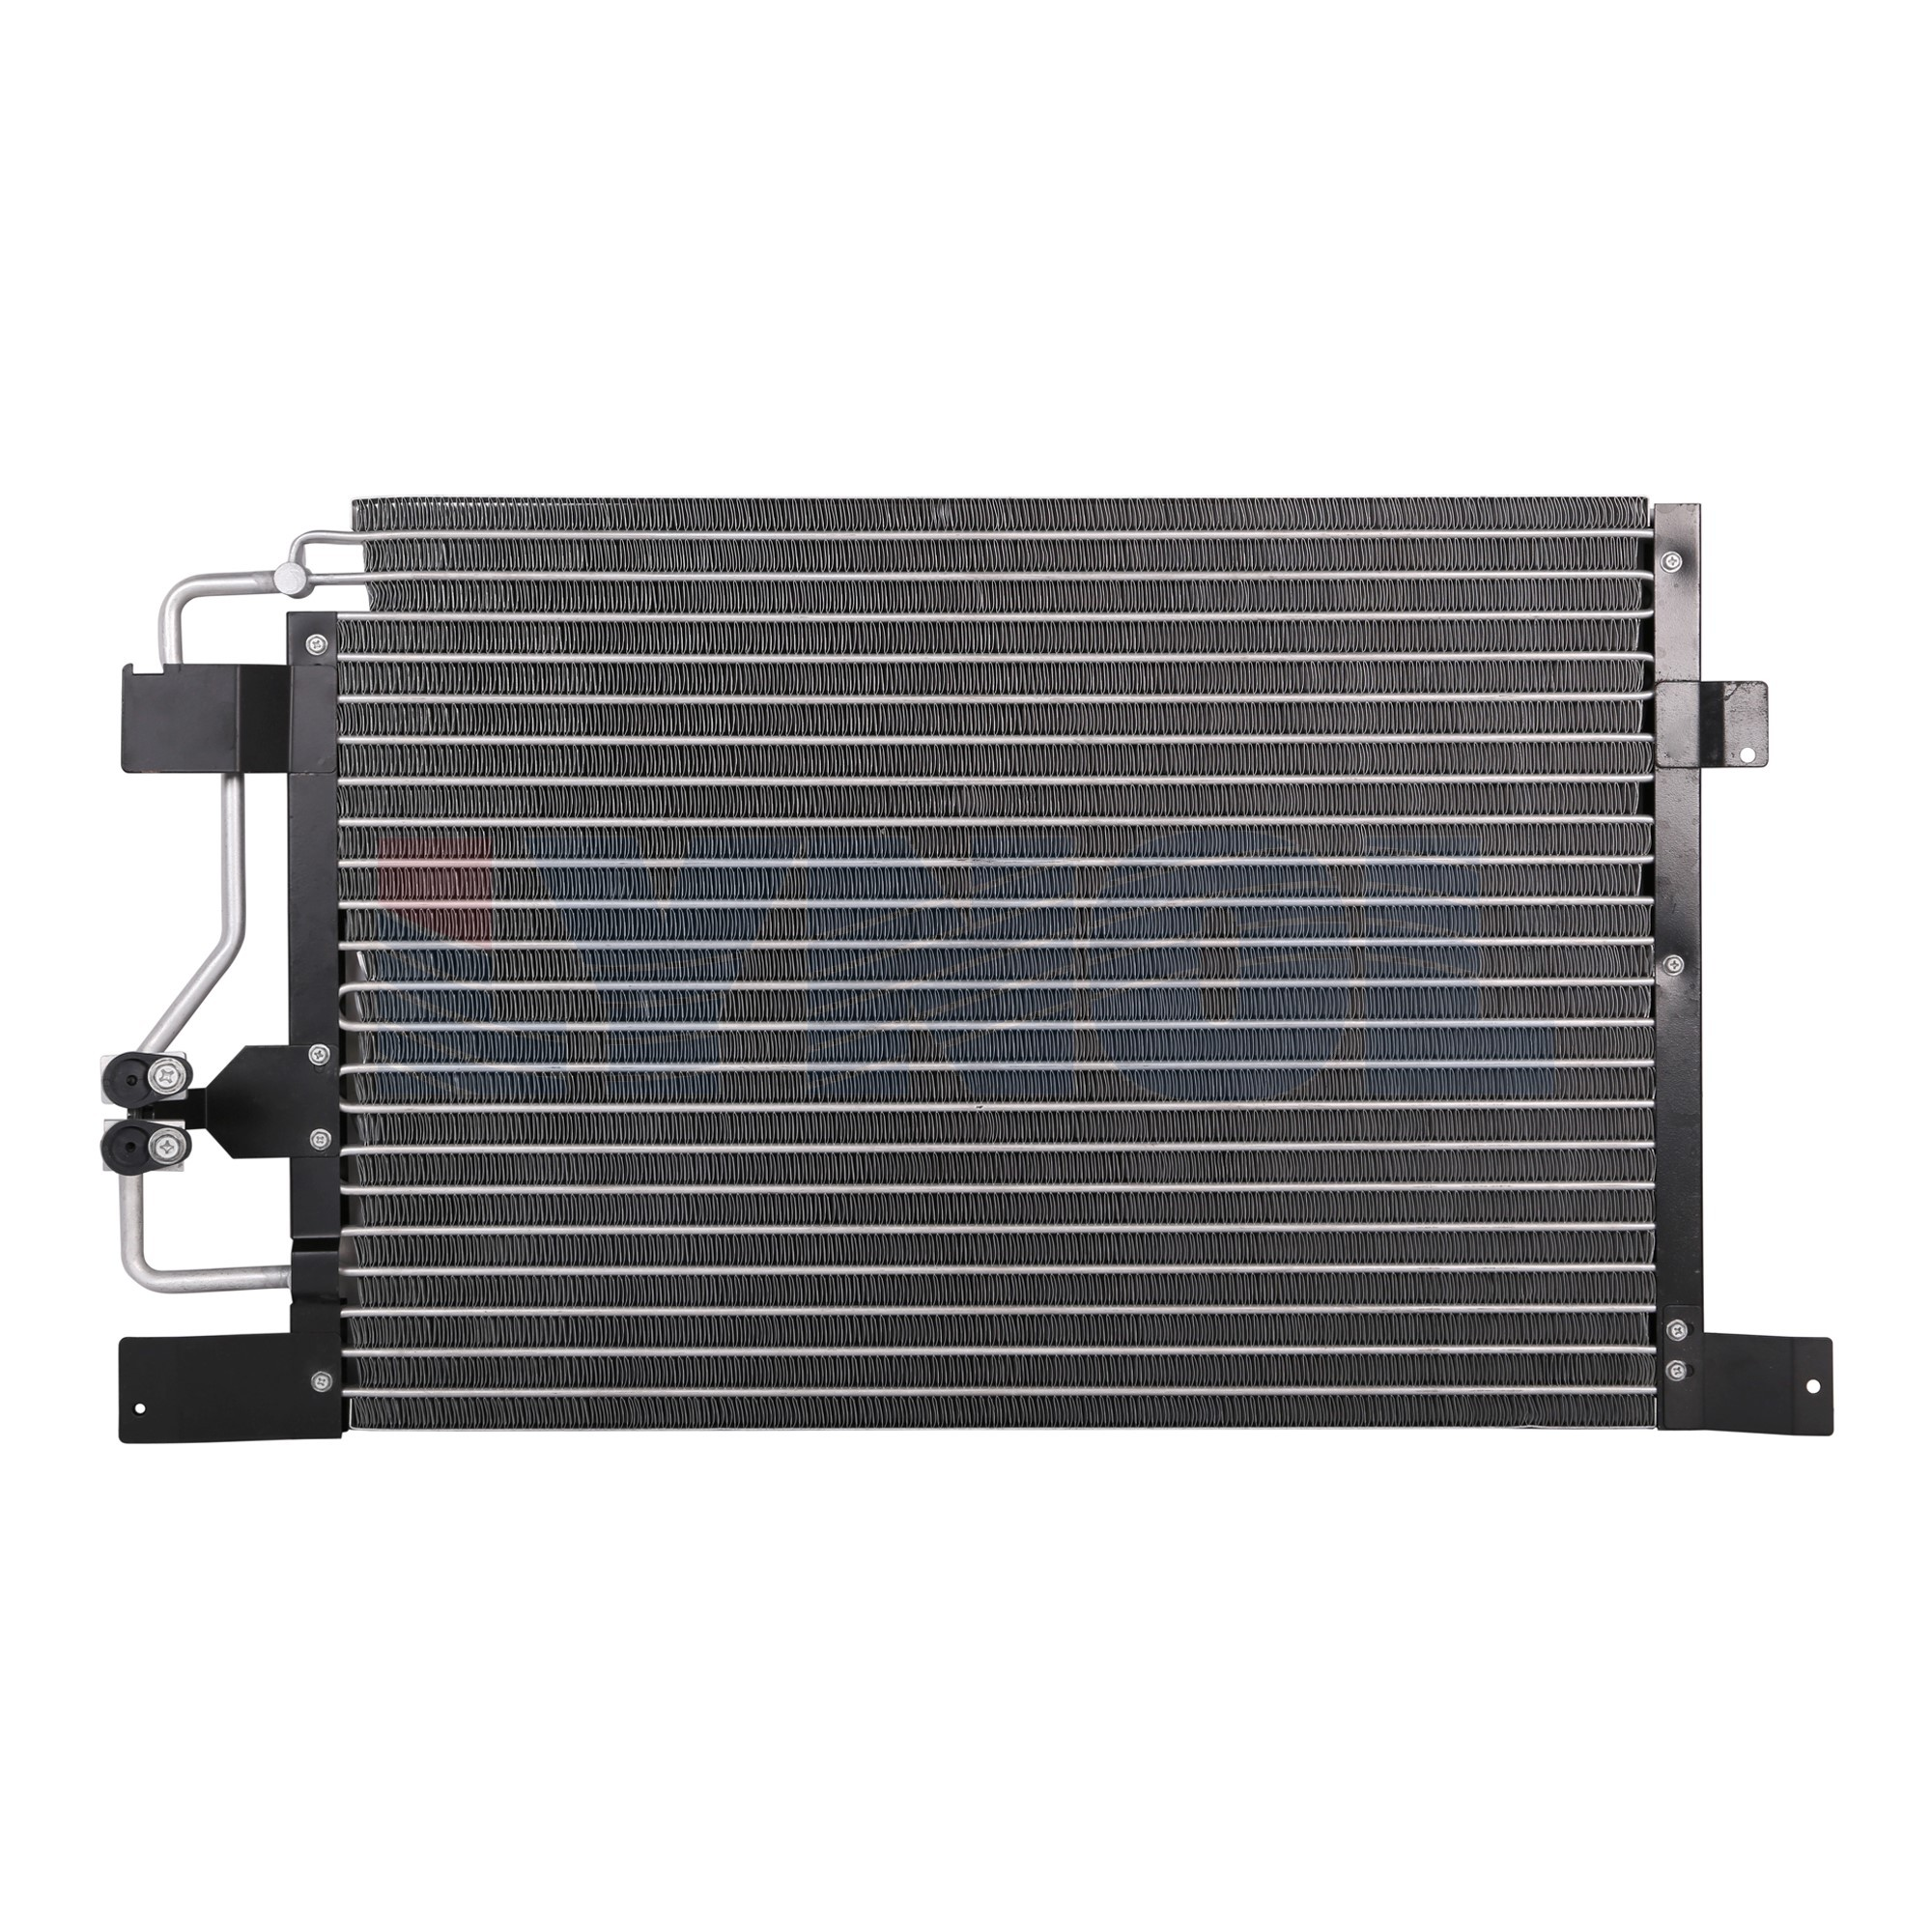 AC4881 - AC Condensers  - 98-02 CROWN VIC, TOWNCAR, GRAND MARQUIS